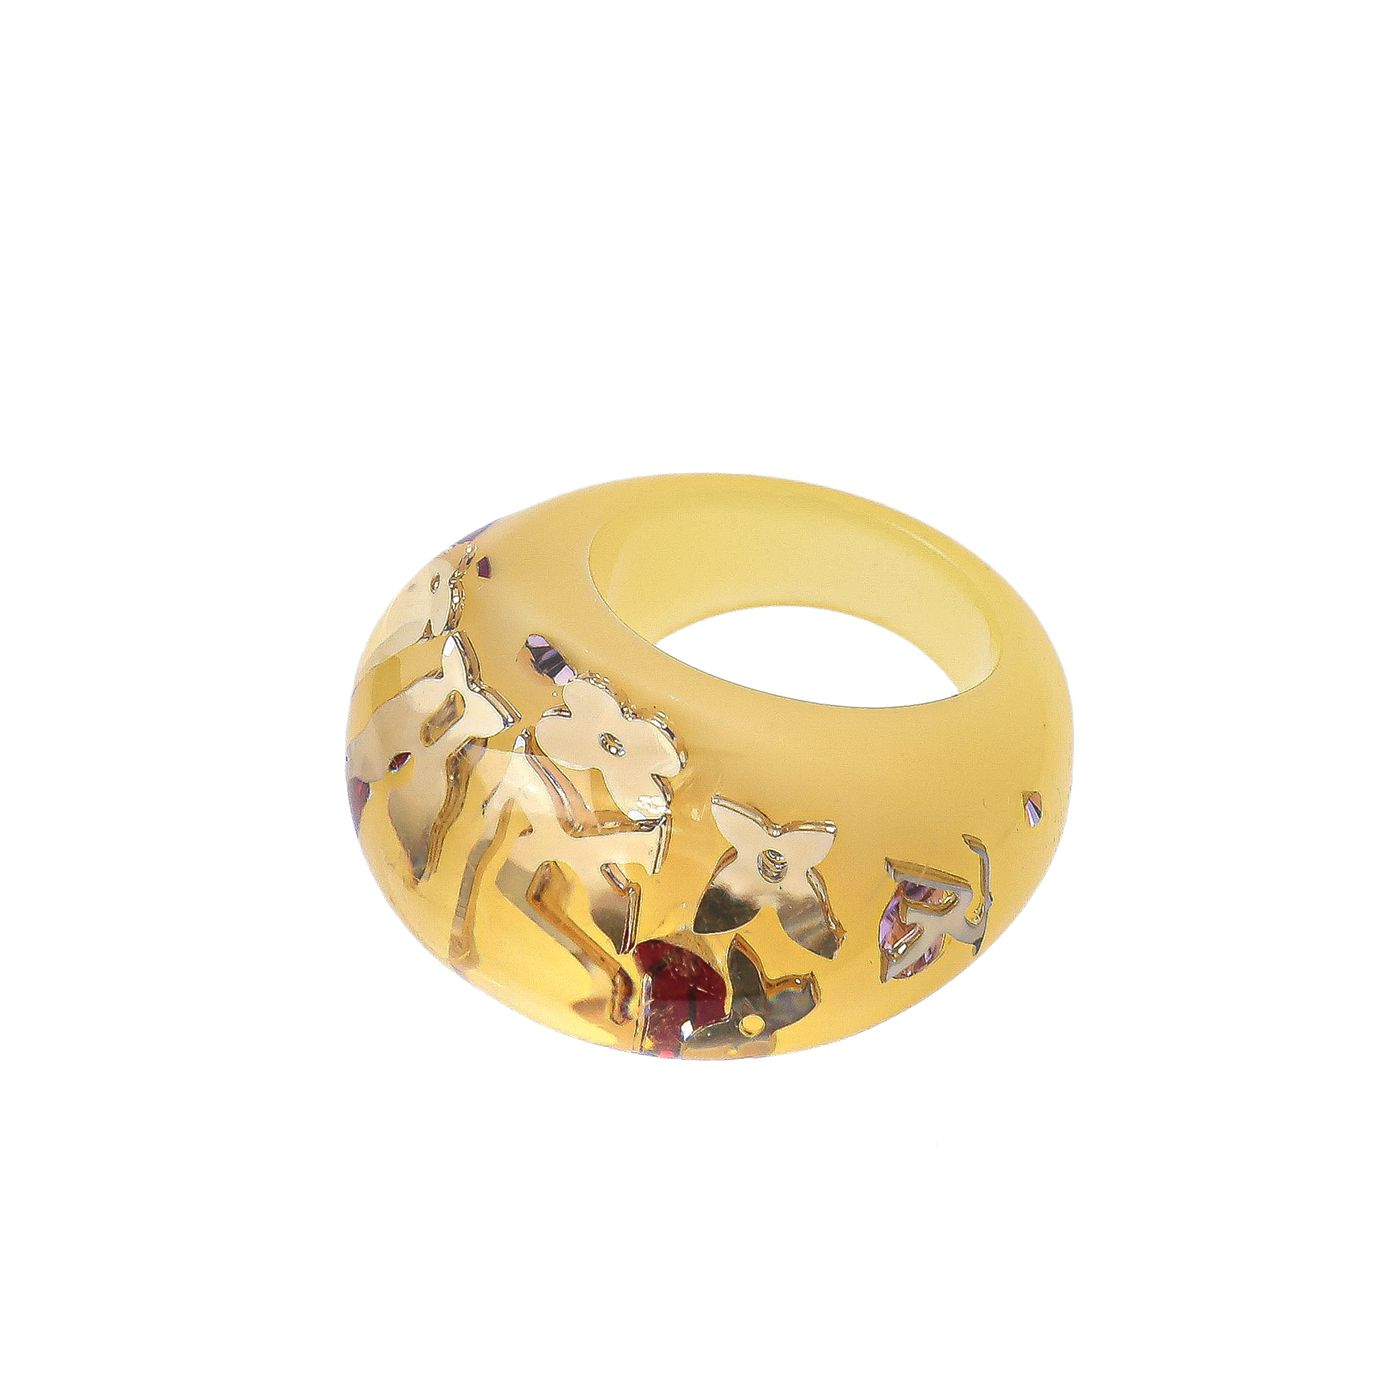 Louis Vuitton Yellow Inclusion Ring Medium